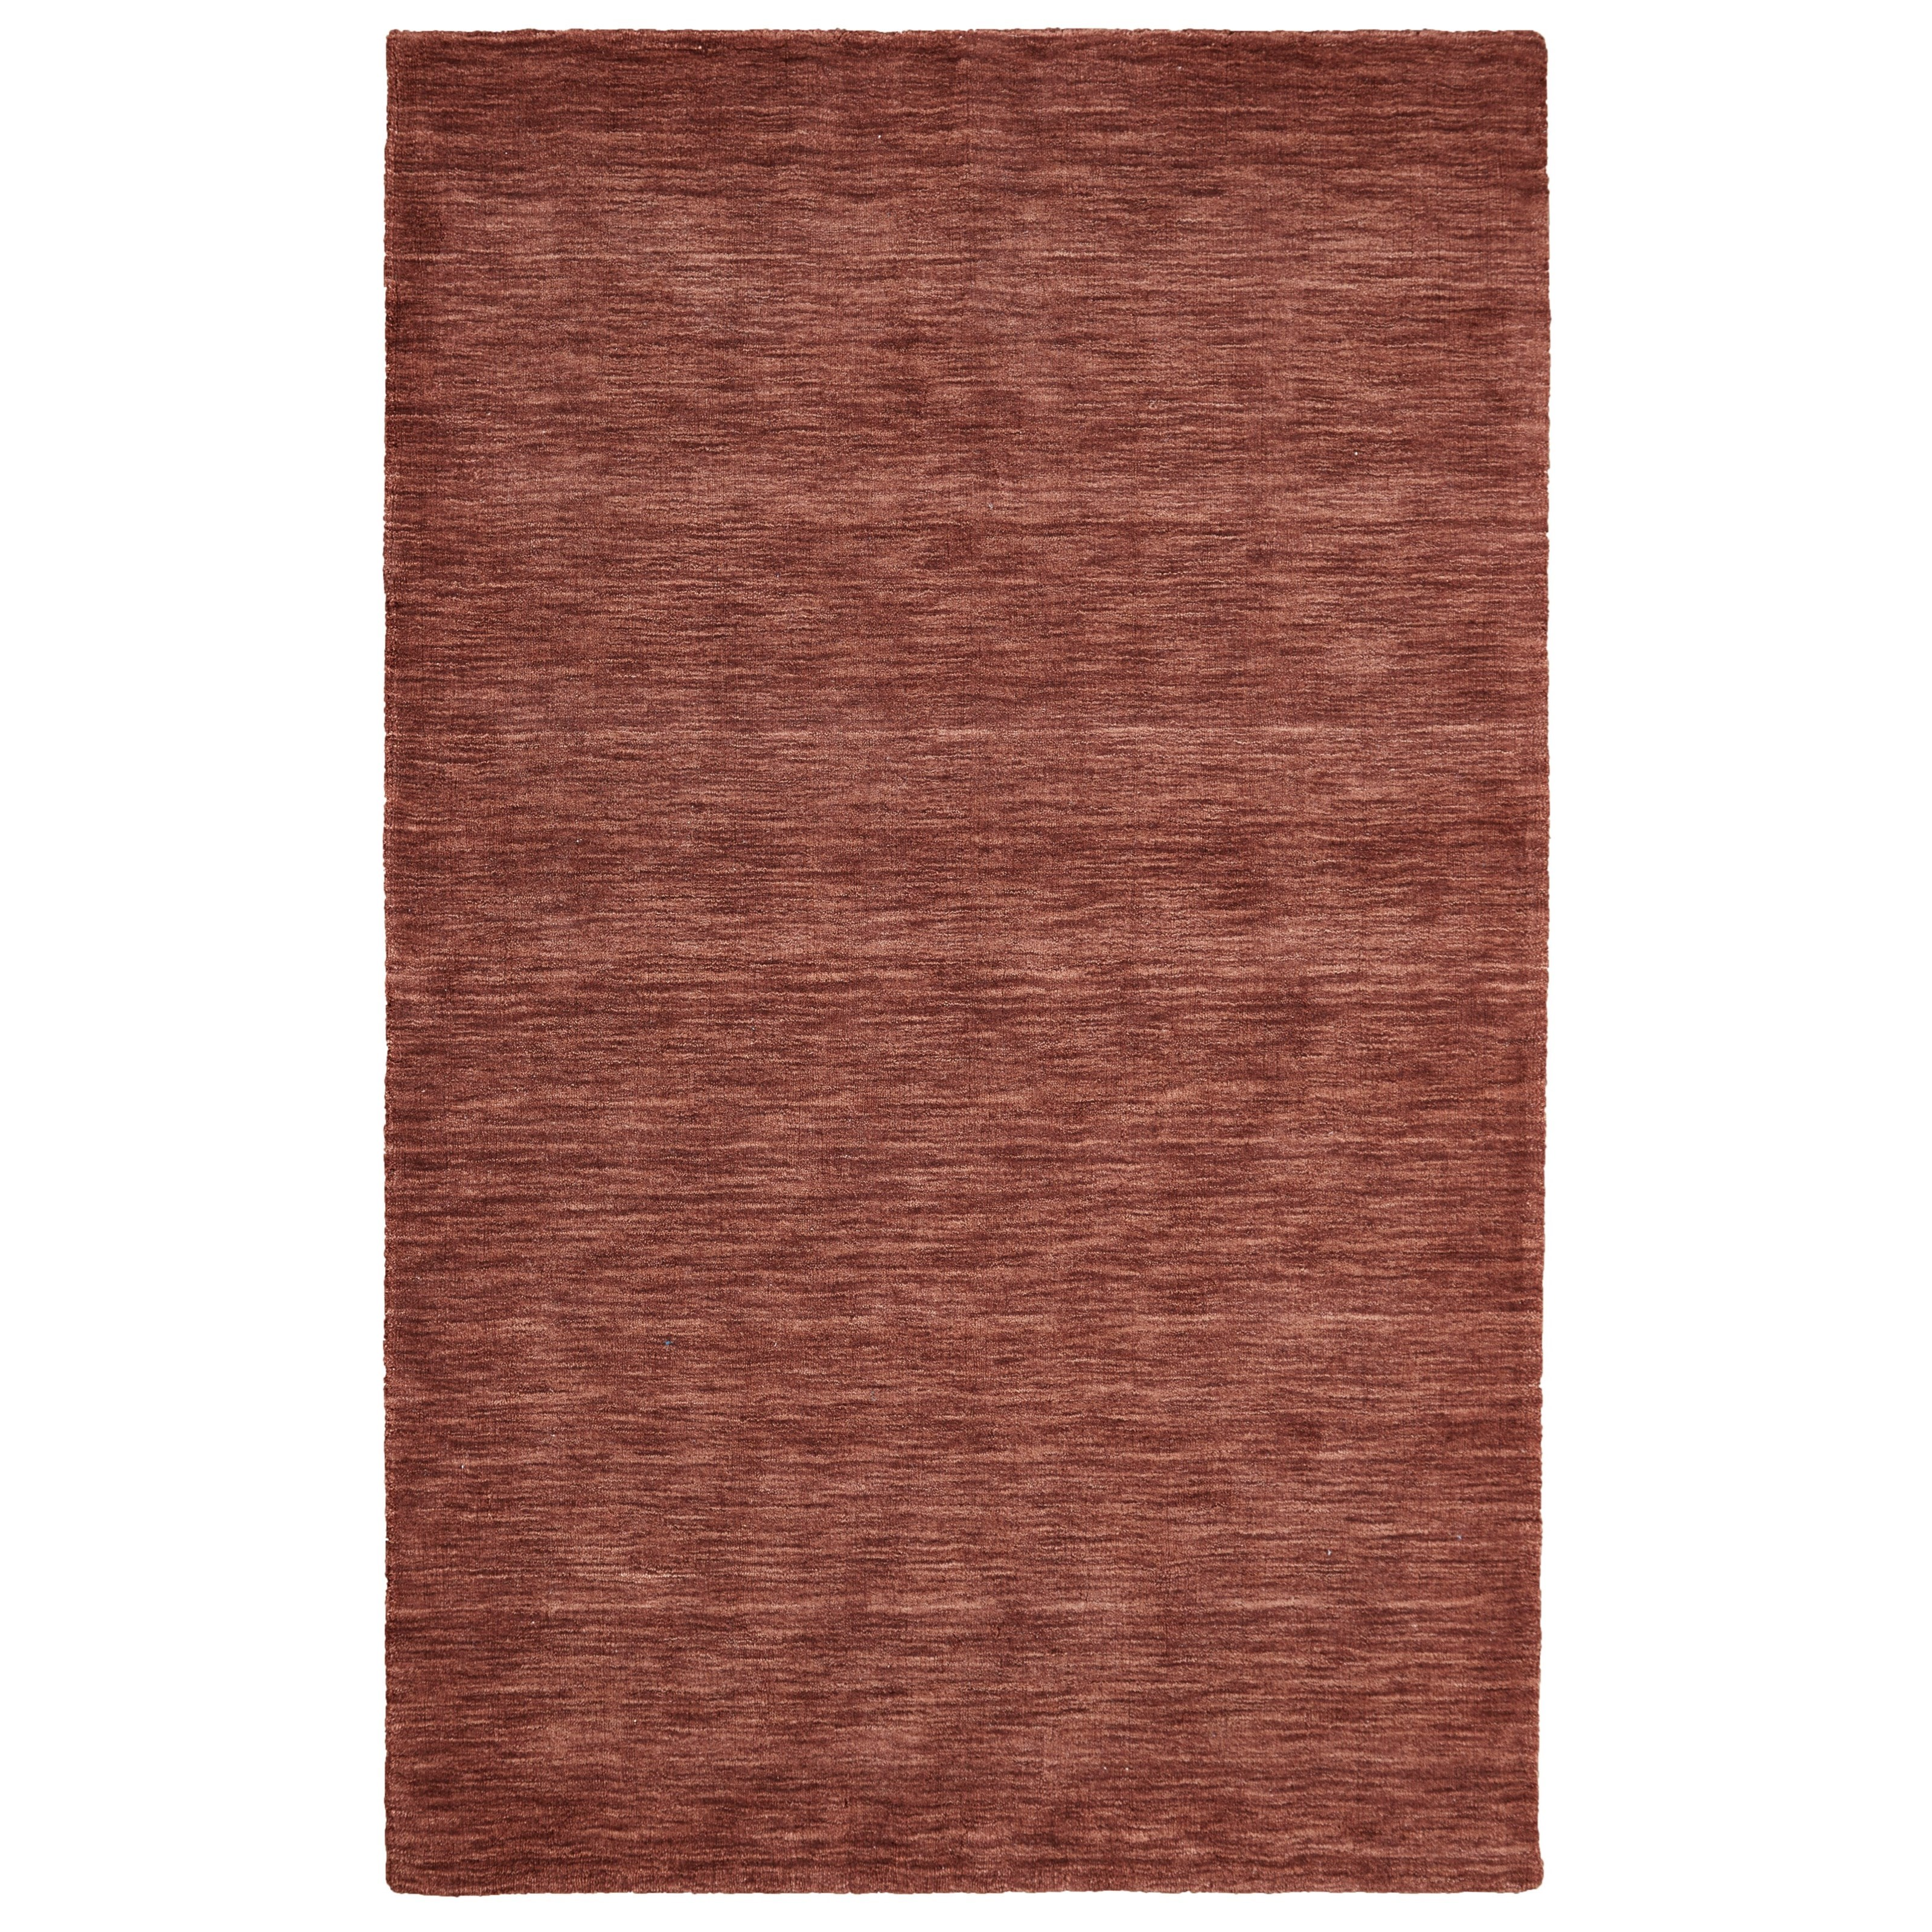 Luna Rust 5' x 8' Area Rug by Feizy Rugs at Jacksonville Furniture Mart